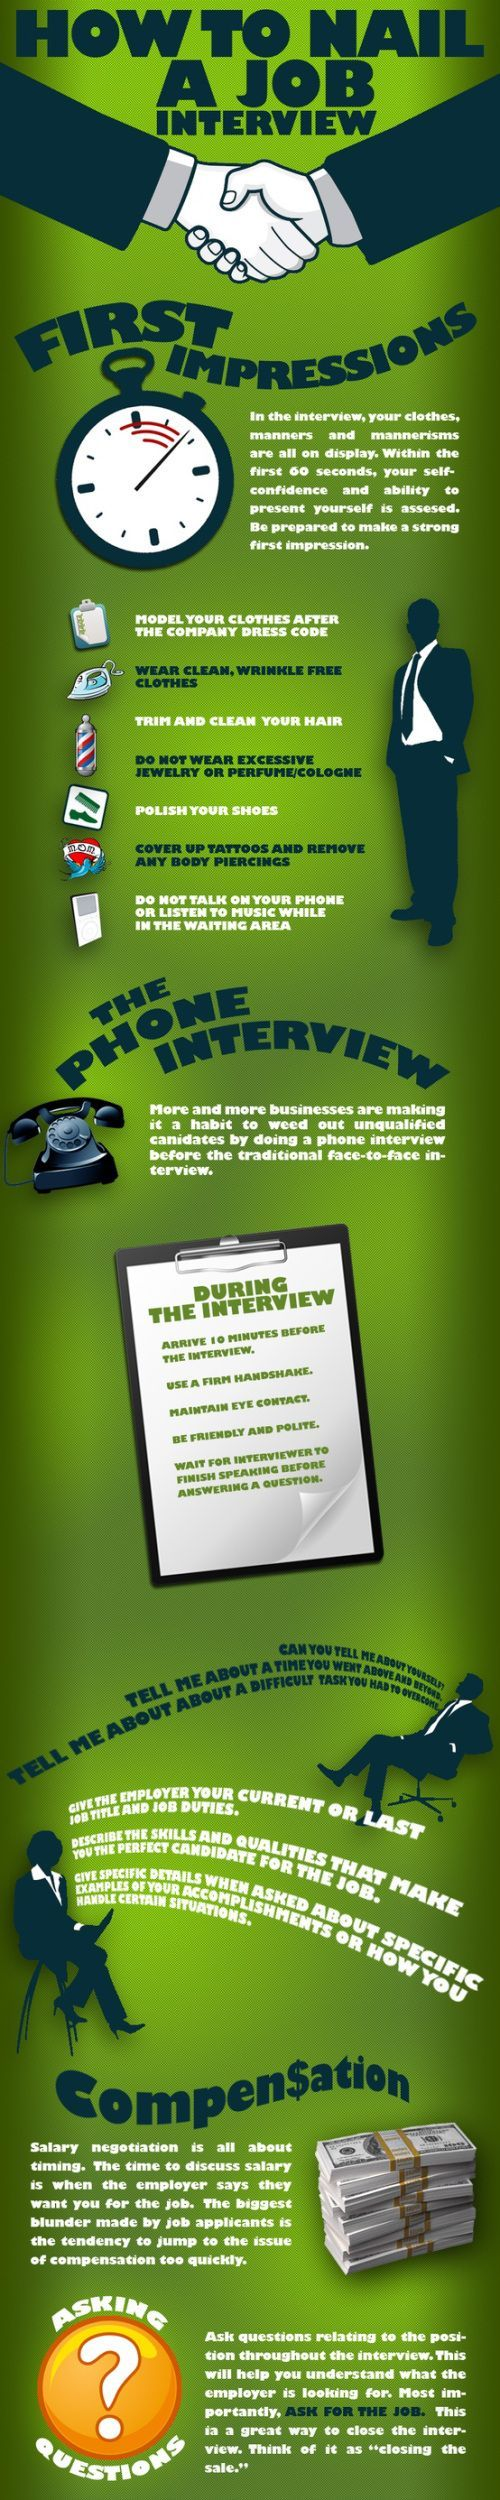 How to Nail a #JobInterview. Great for my Principles of Business